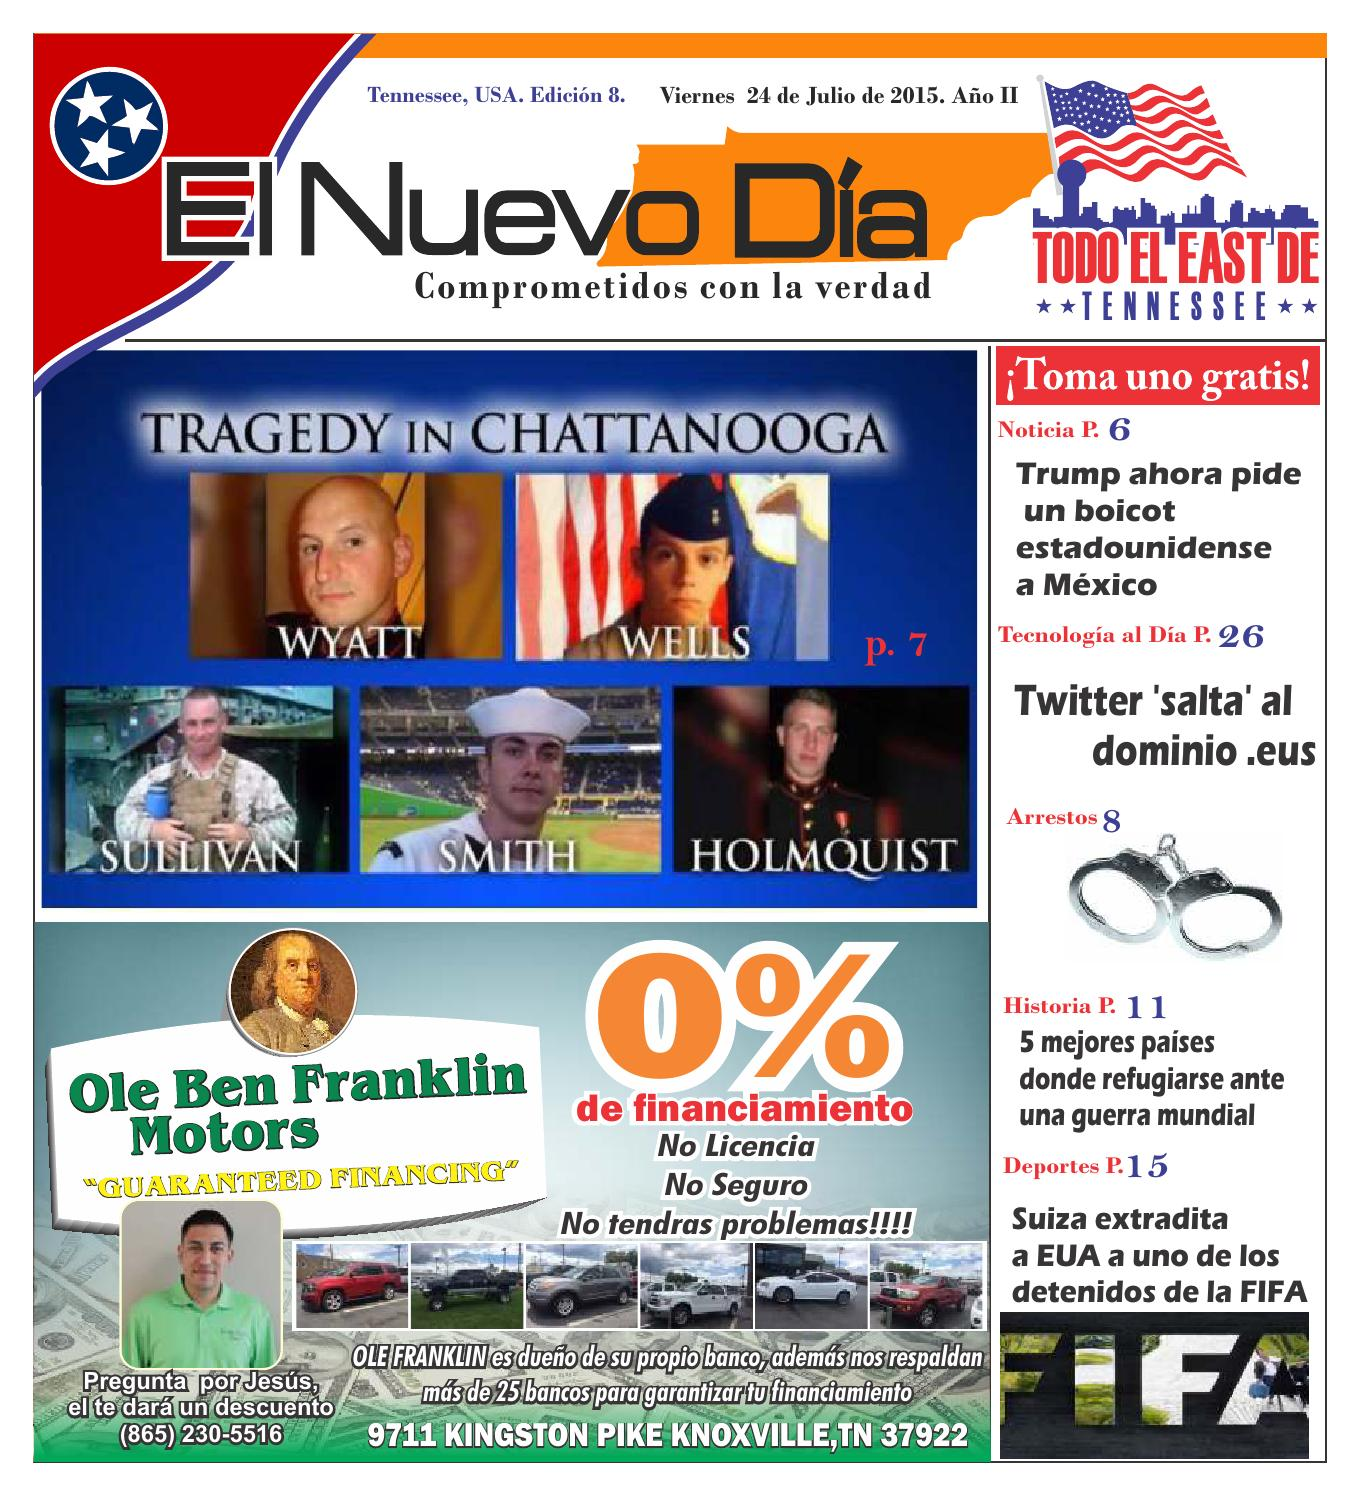 Yeni flores el nuevo dia edicion 8 a o 2 by leonardo lagos for Ole ben franklin motors knoxville